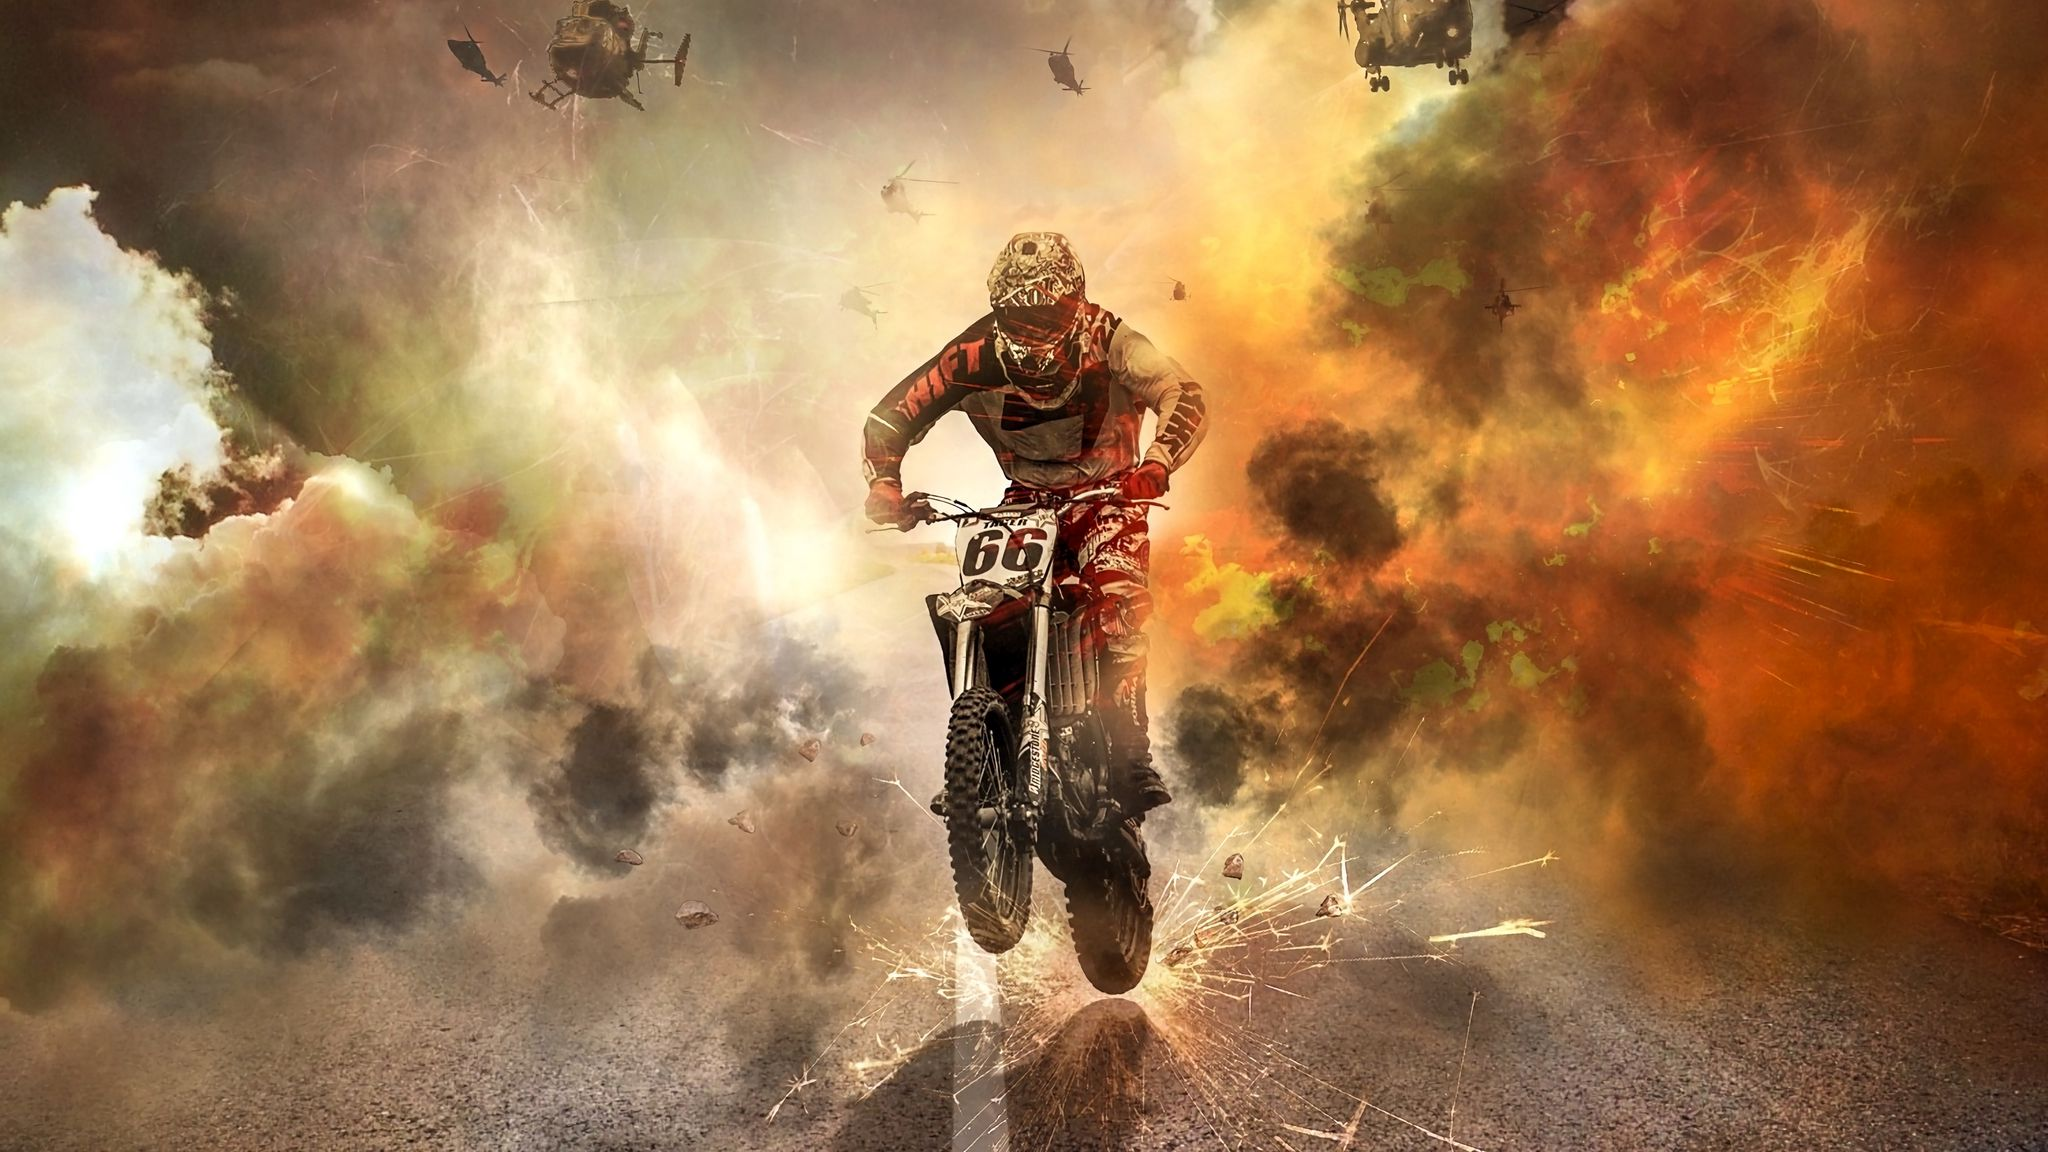 2048x1152 Wallpaper motorcyclist, motorcycle, helicopters, sparks, fire, road